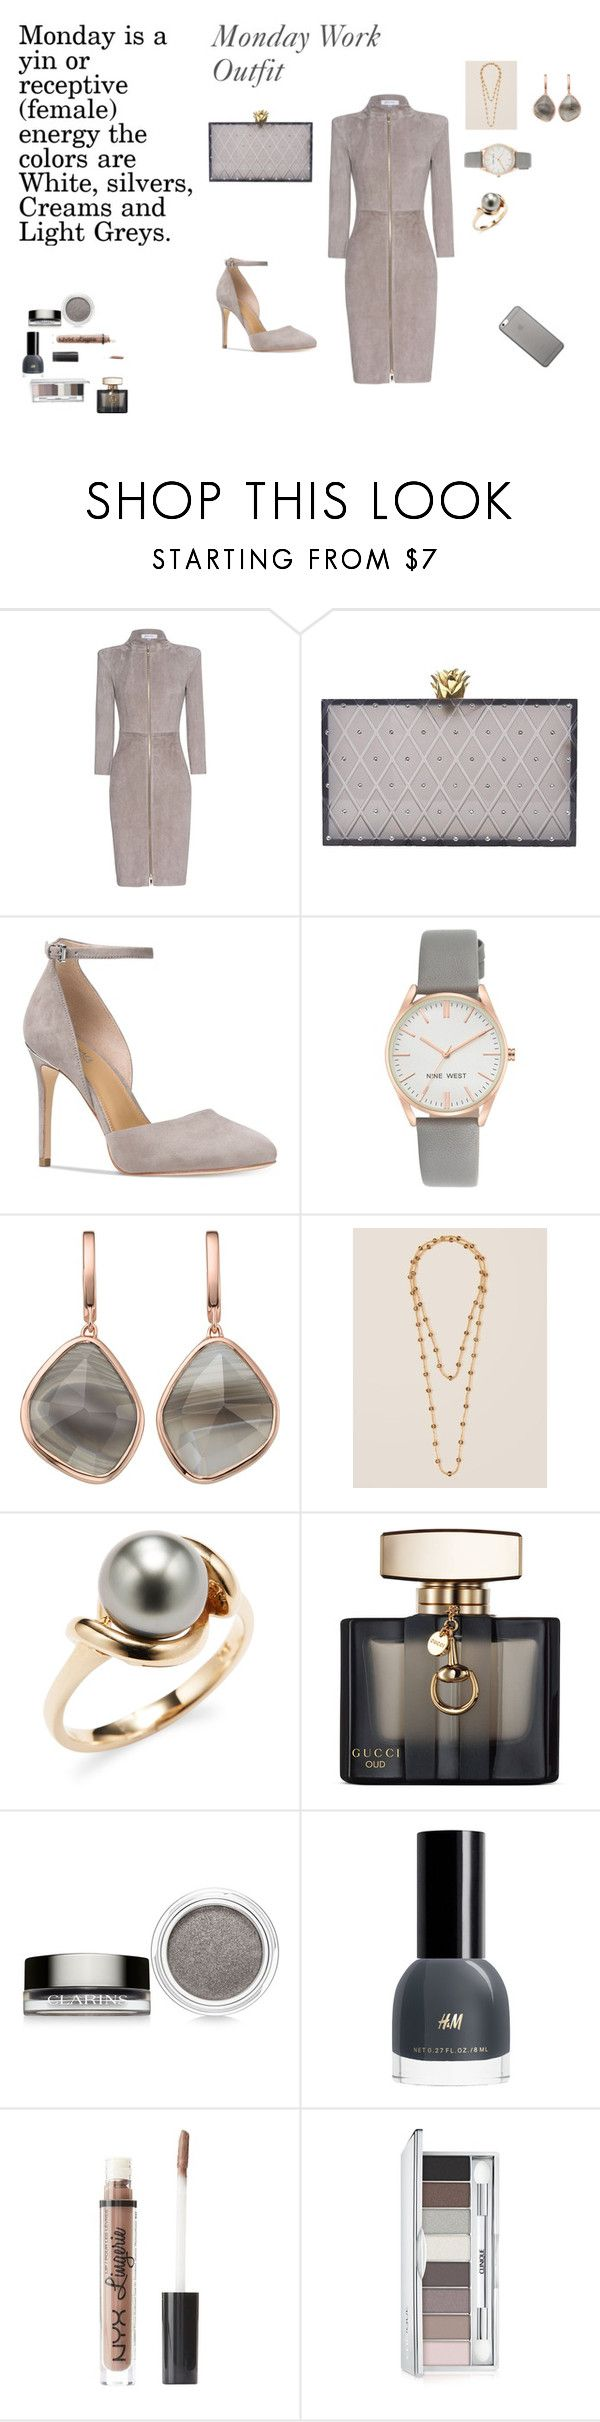 """""""Monday Work Outfit-Grey"""" by rebeccadavisblogger on Polyvore featuring Jitrois, Charlotte Olympia, Michael Kors, Nine West, Monica Vinader, Francesca's, Tara, Gucci, Clarins and Charlotte Russe"""